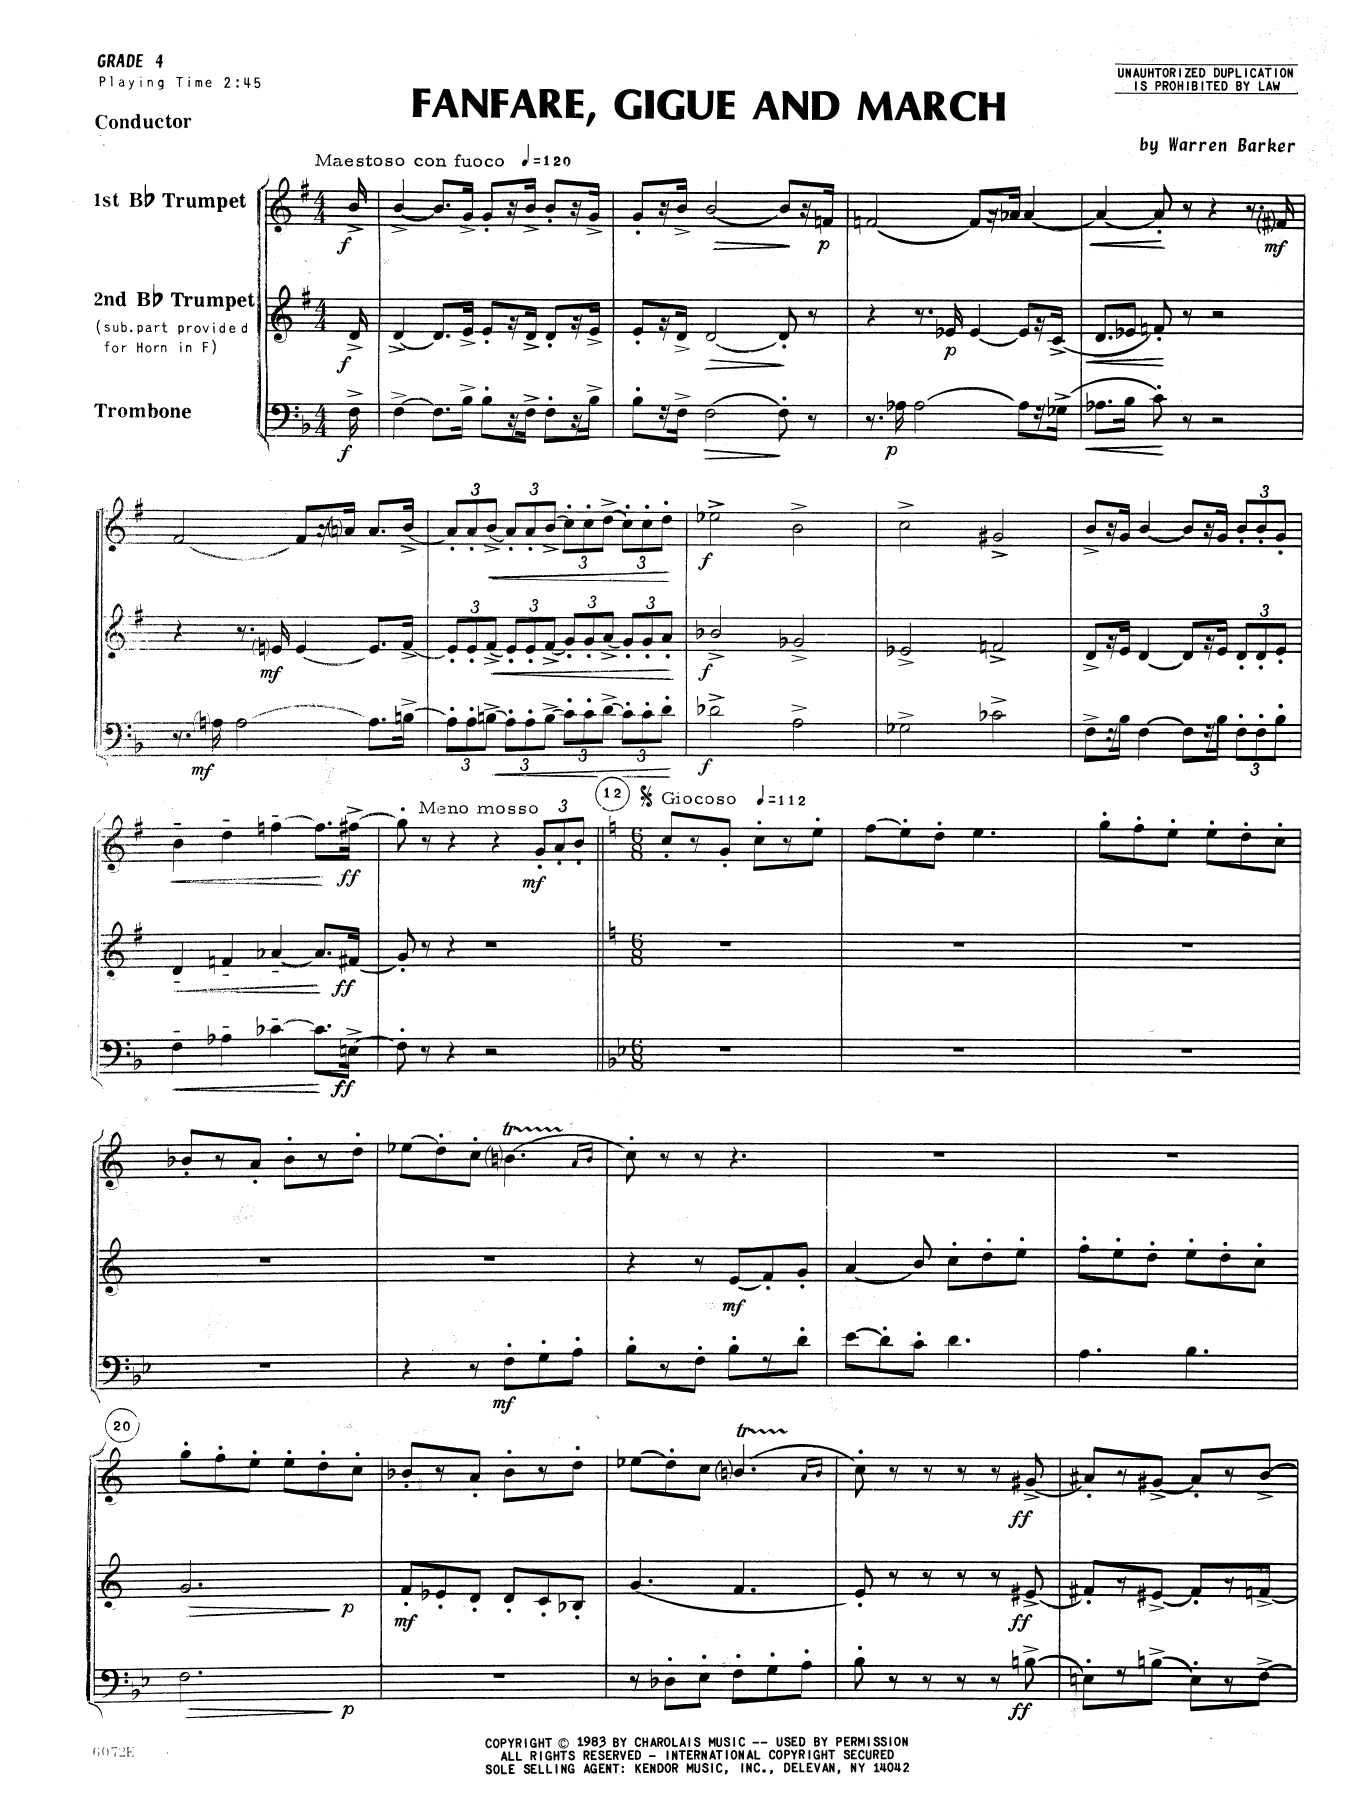 Fanfare, Gigue And March (COMPLETE) sheet music for brass quartet by Barker